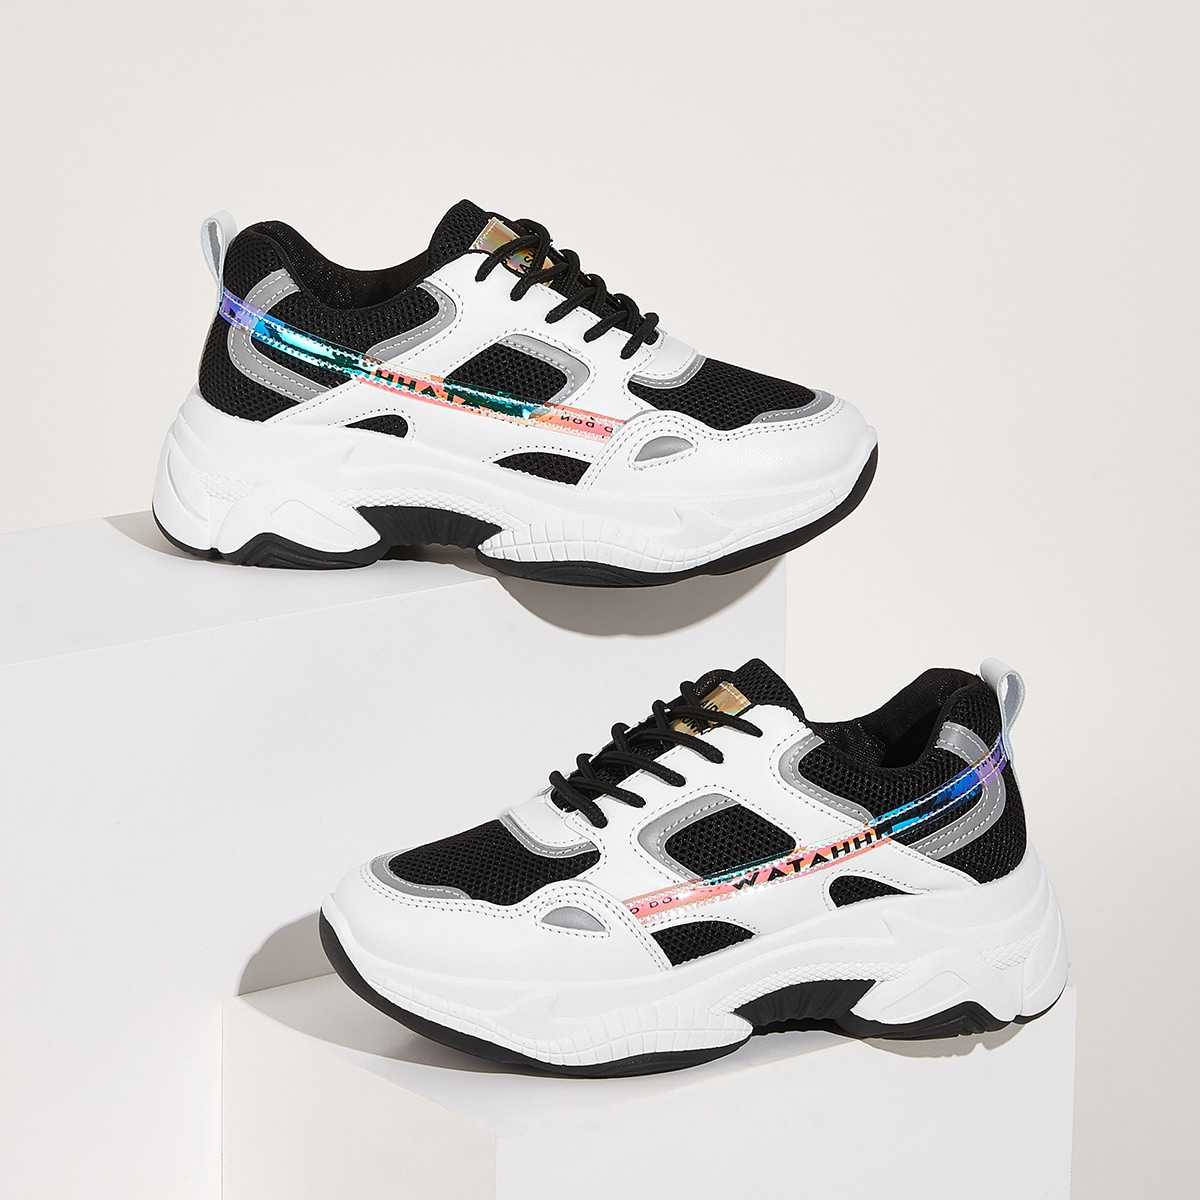 Contrast Lace-up Front Chunky Sole Trainers in Black and White by ROMWE on GOOFASH